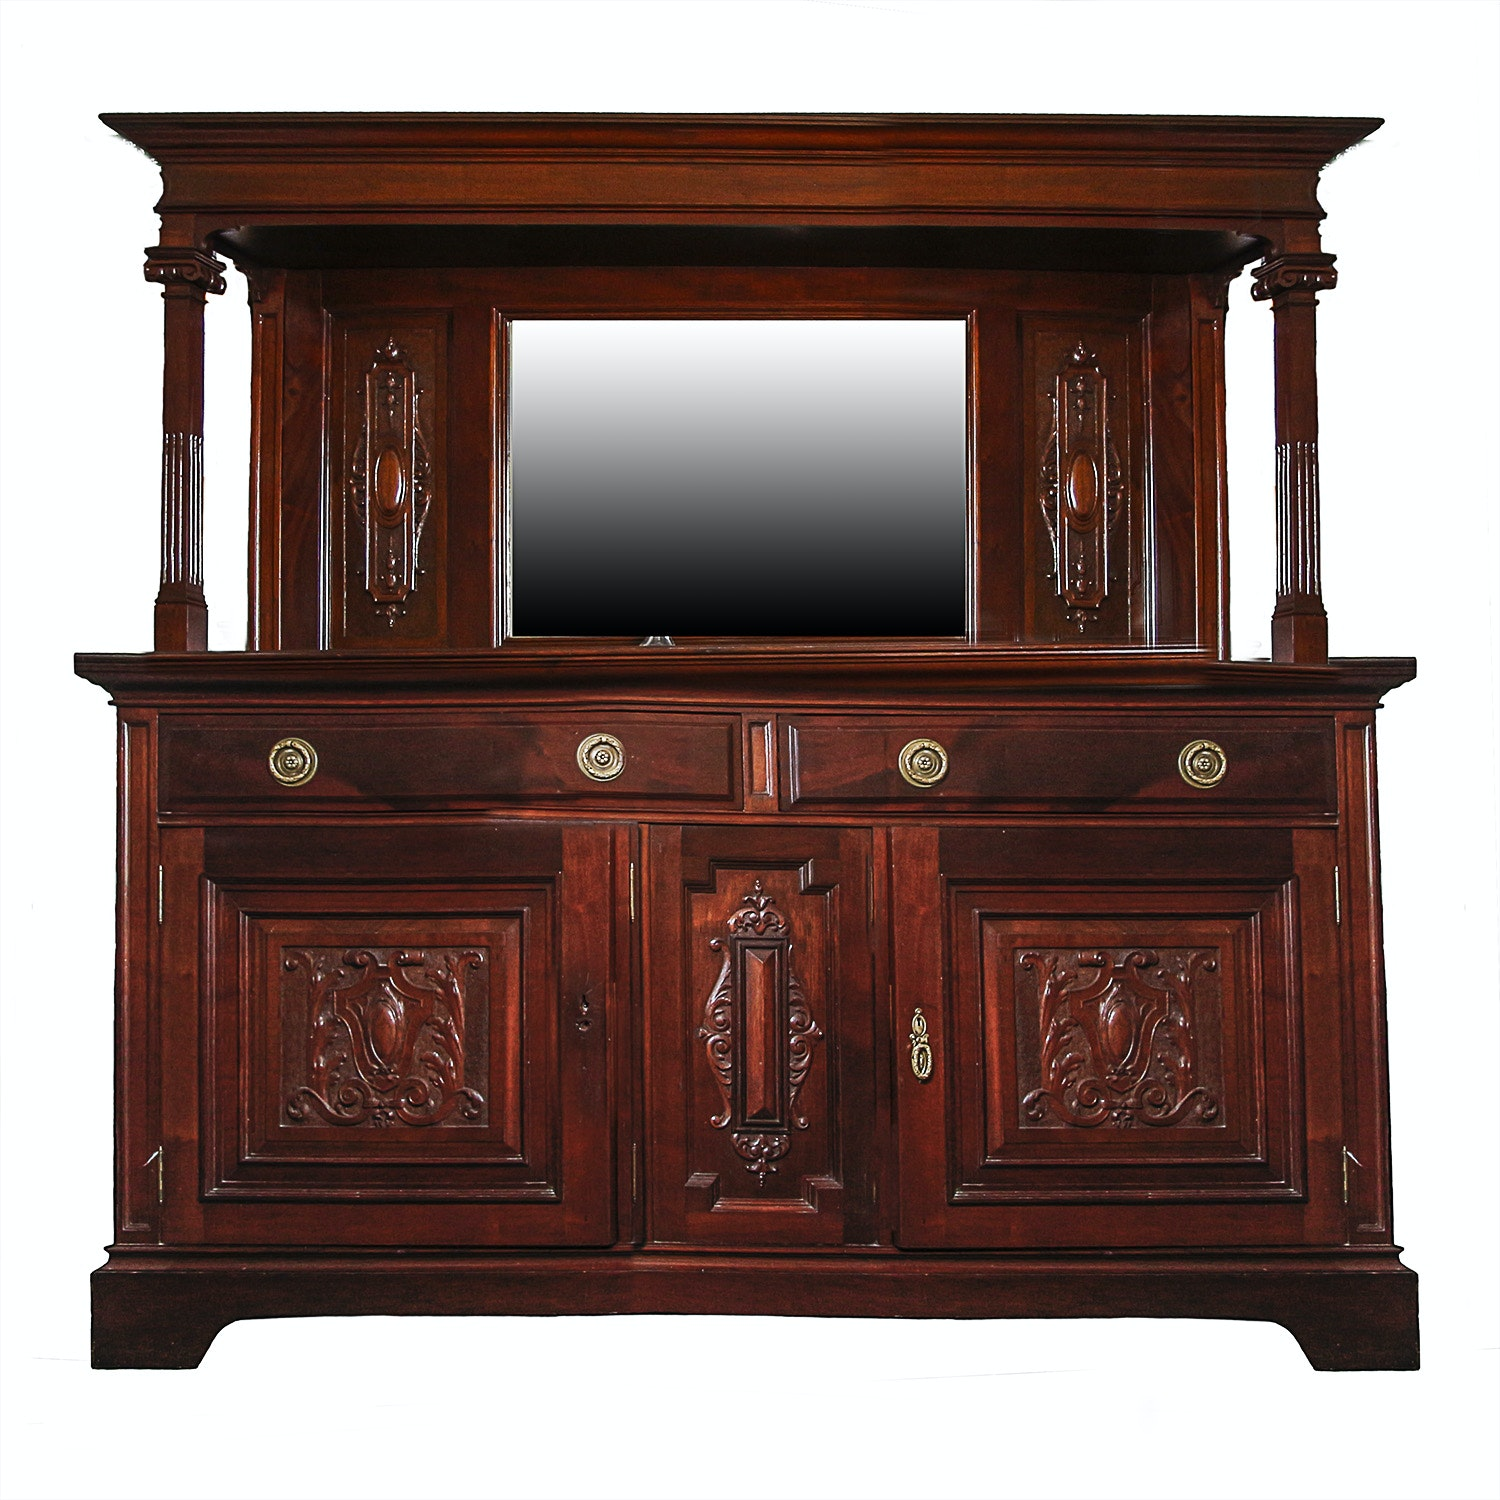 Antique Edwardian Mahogany Sideboard with Mirror